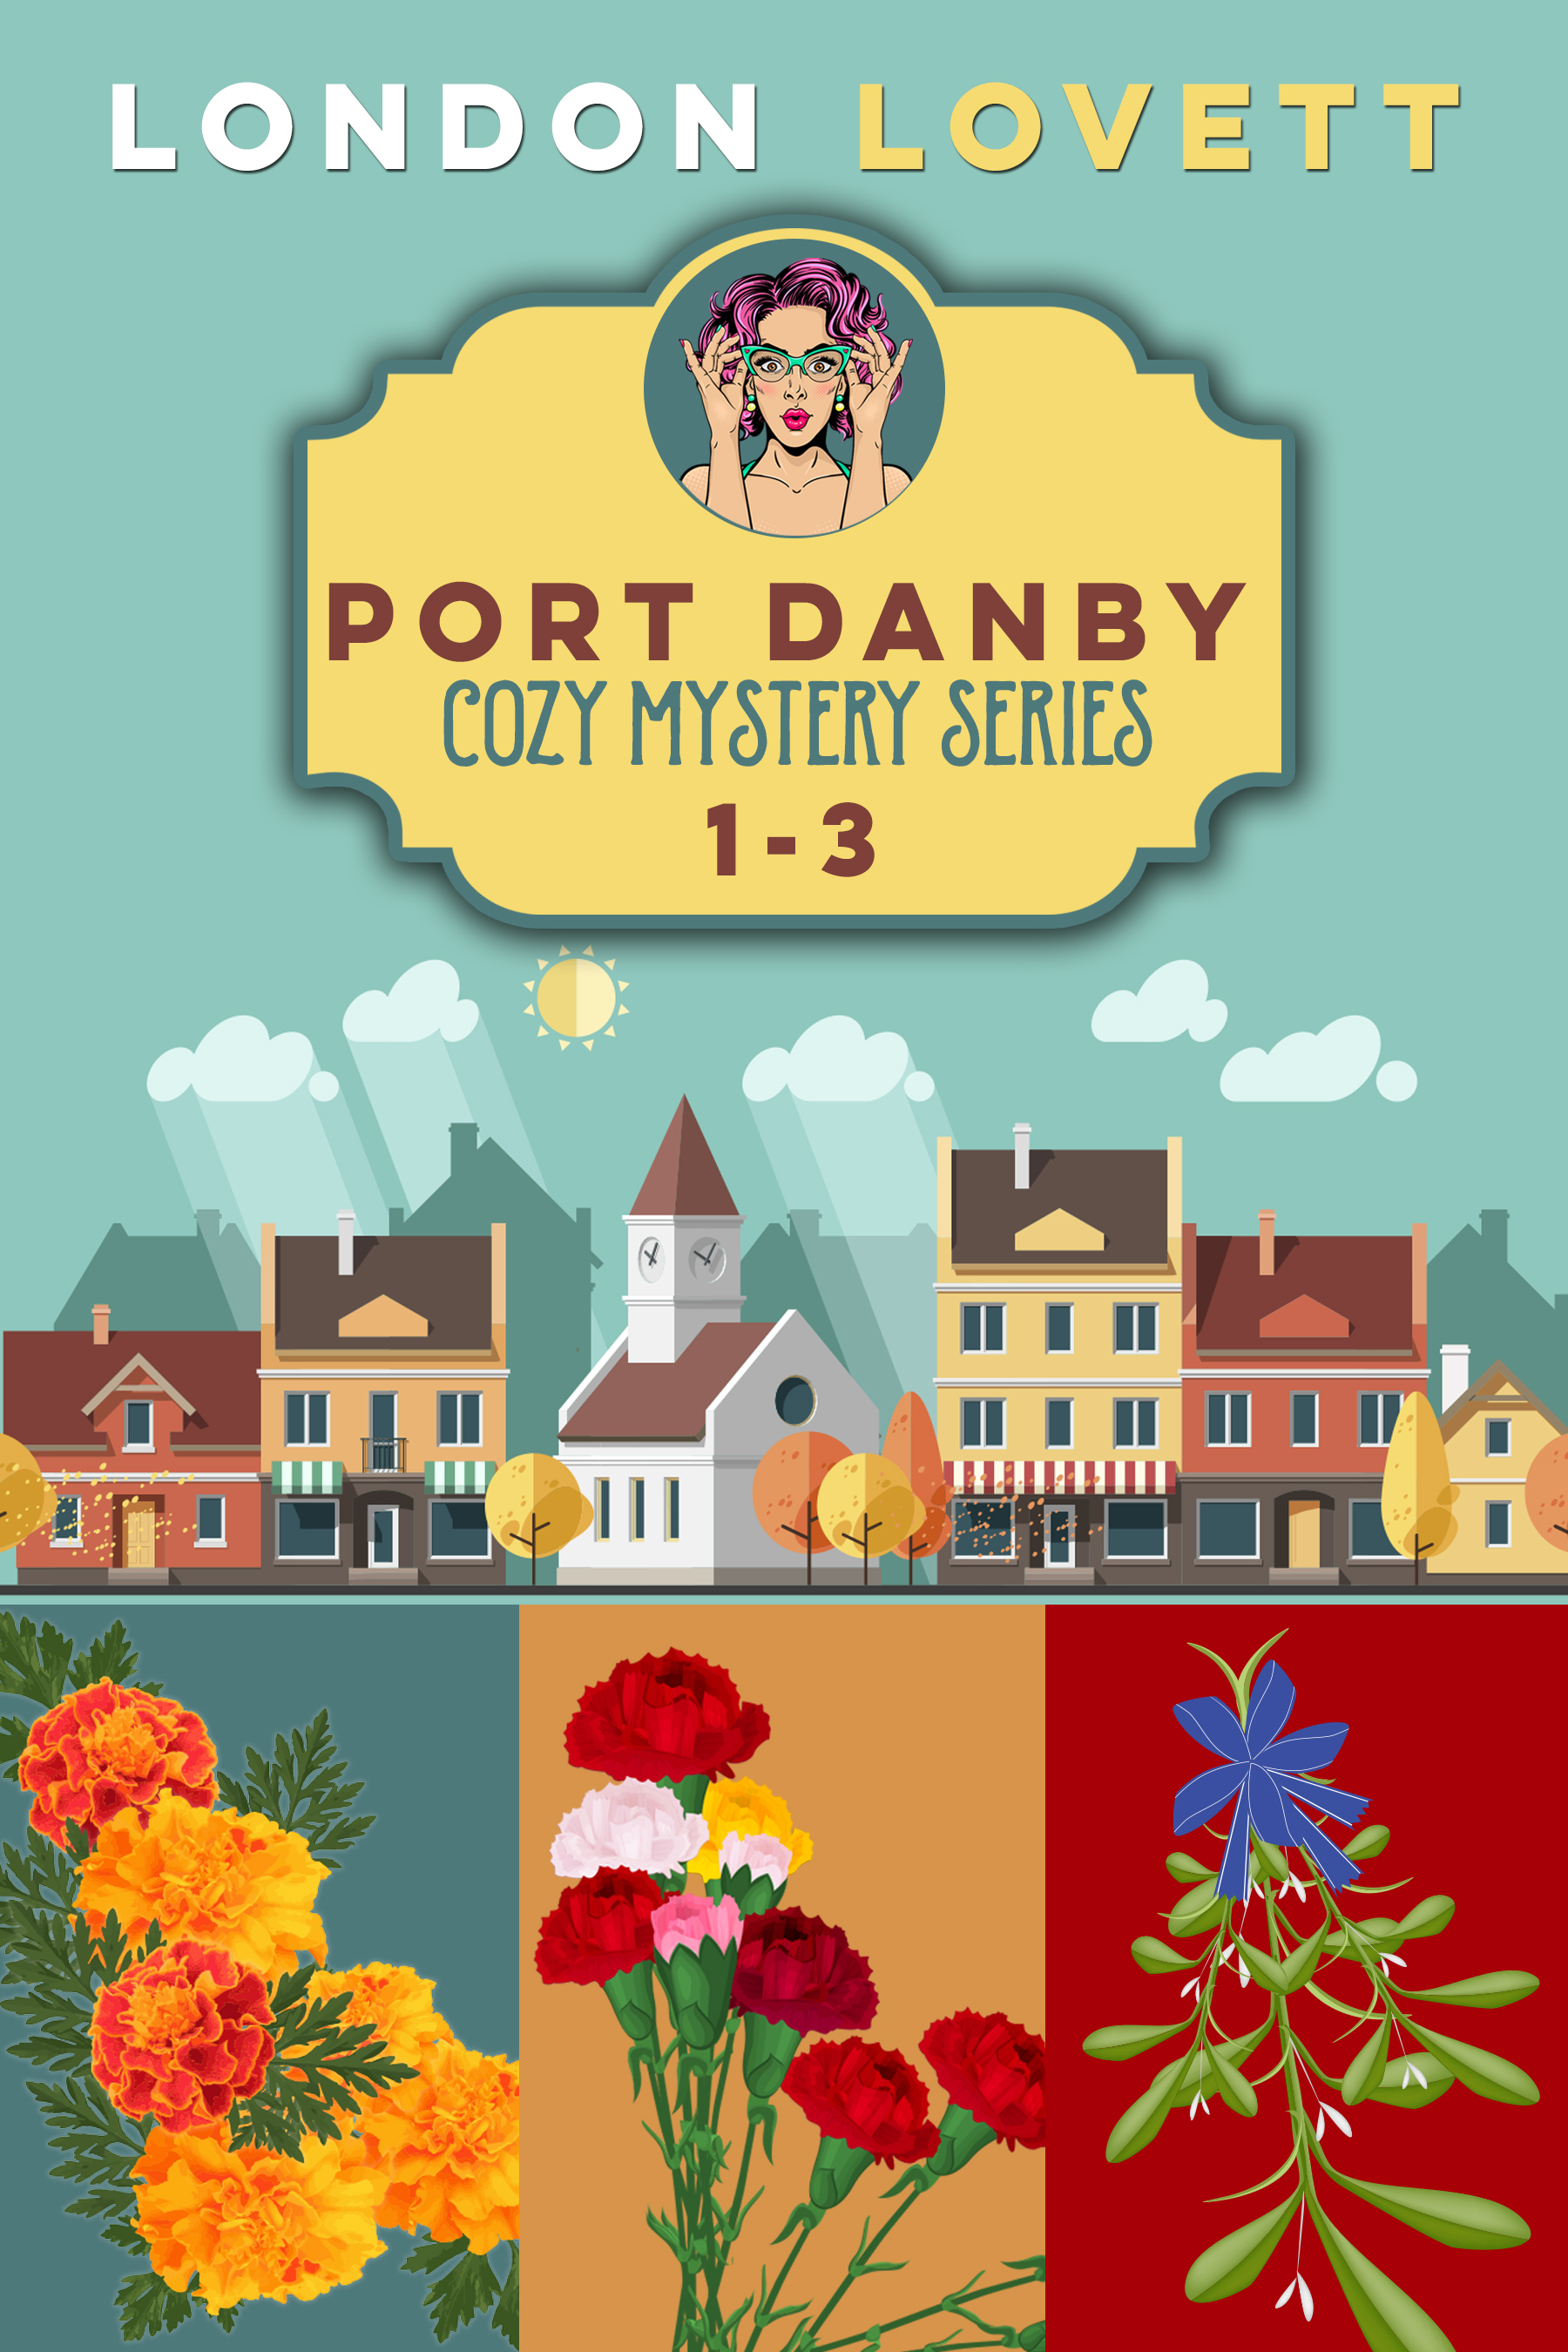 Port Danby Series Box Set (1-3) - This volume contains the first three complete cozy mysteries in London Lovett's Port Danby Cozy Mystery series. Join Lacey 'Pink' Pinkerton and the cast of colorful, lovable Port Danby characters—including the endearing and handsome Detective James Briggs—for three intriguing murder mysteries.Read on: Amazon iBooks Nook Kobo Google